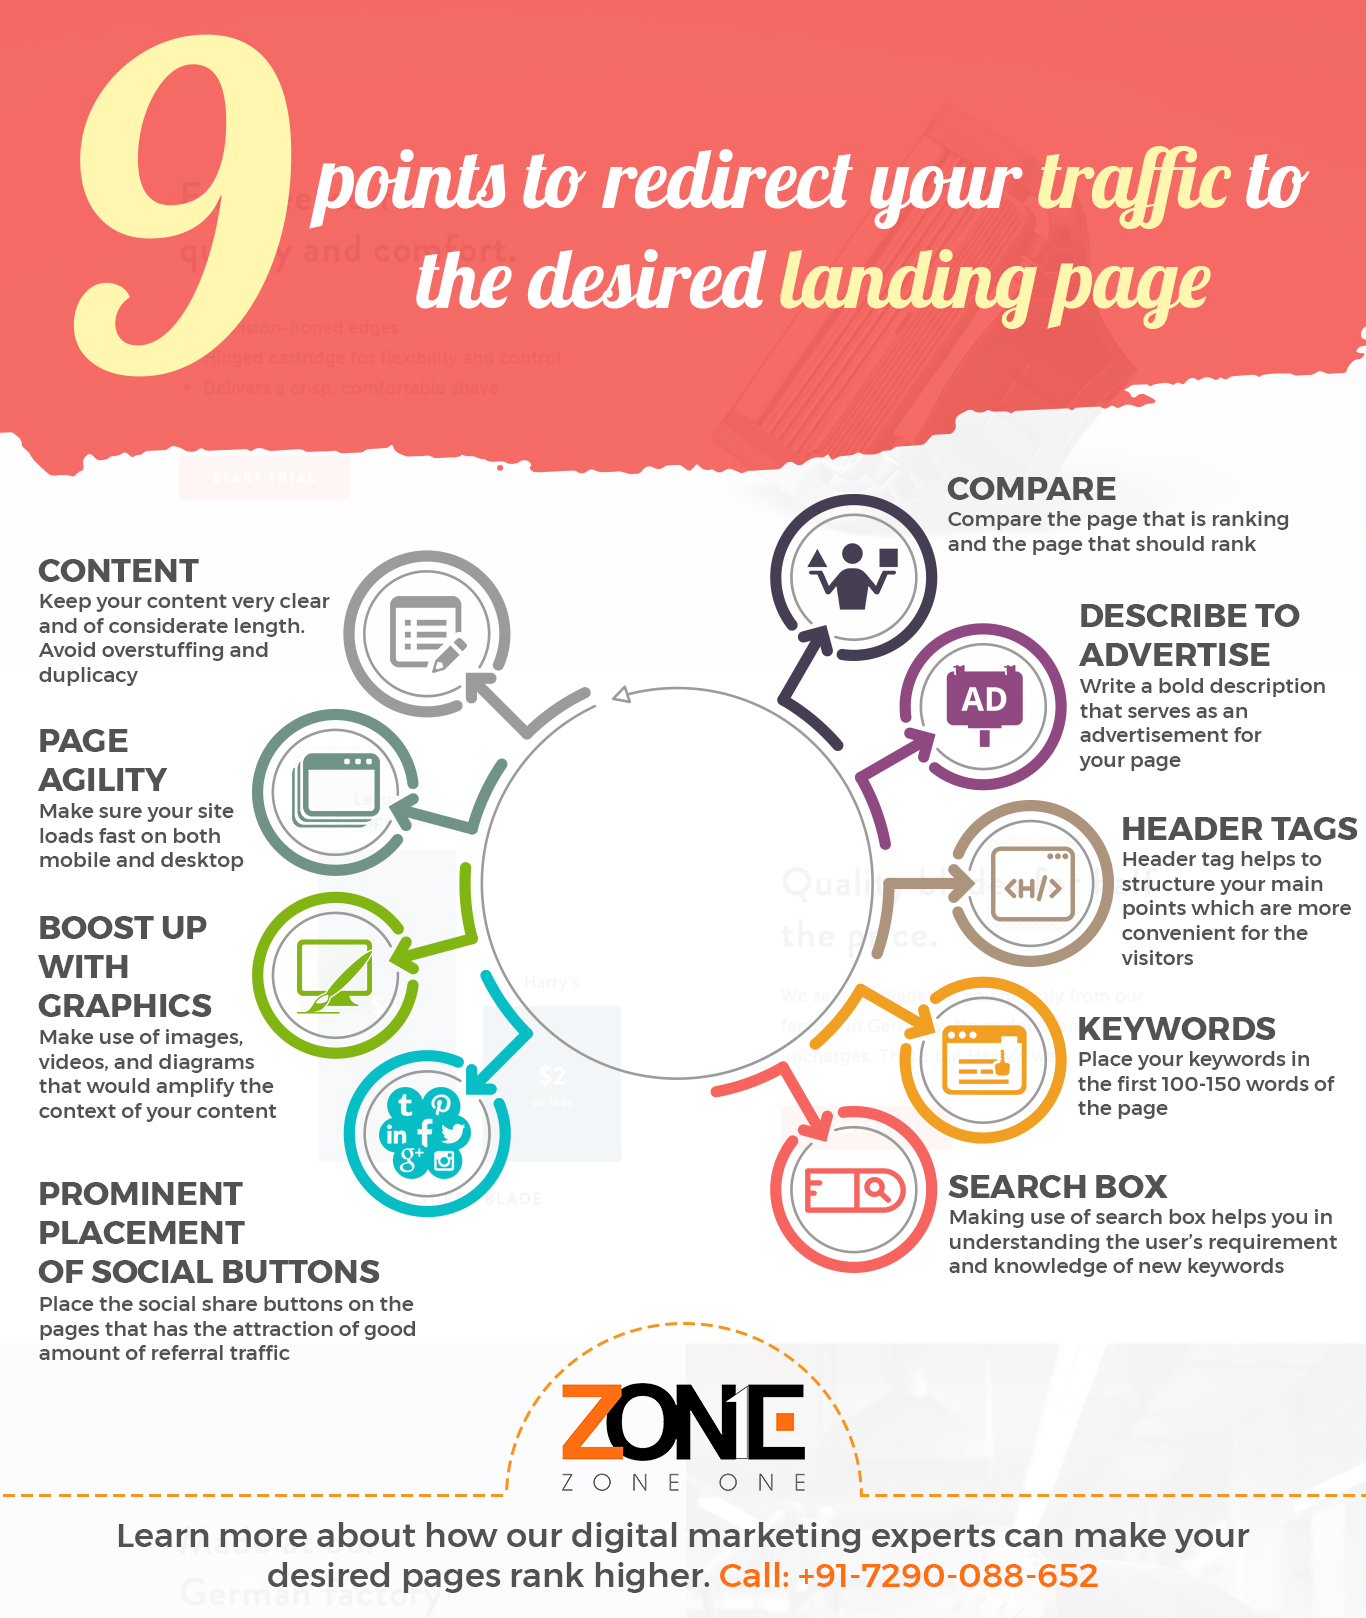 9 Points To Redirect Your Traffic To The Desired Landing Page